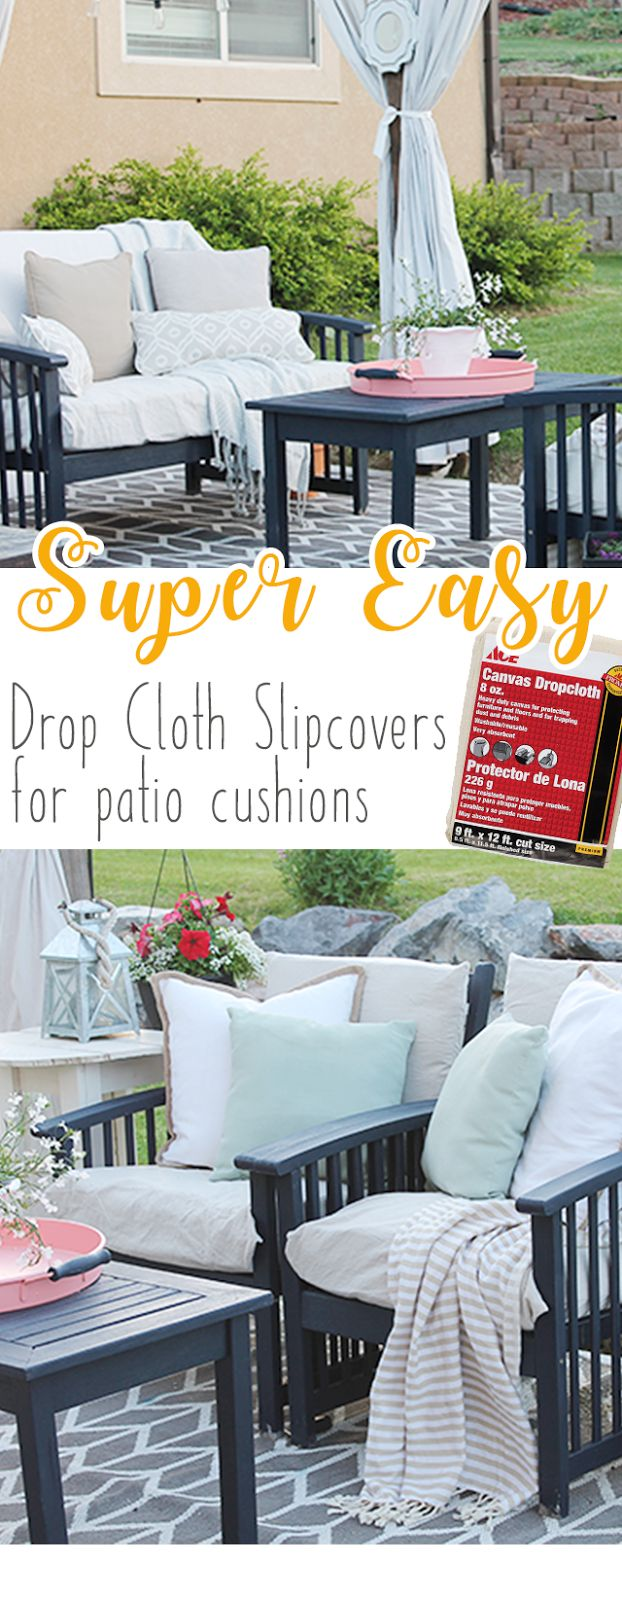 Best 25 recover patio cushions ideas on pinterest diy cushion covers patio cushions and reupholster outdoor cushions